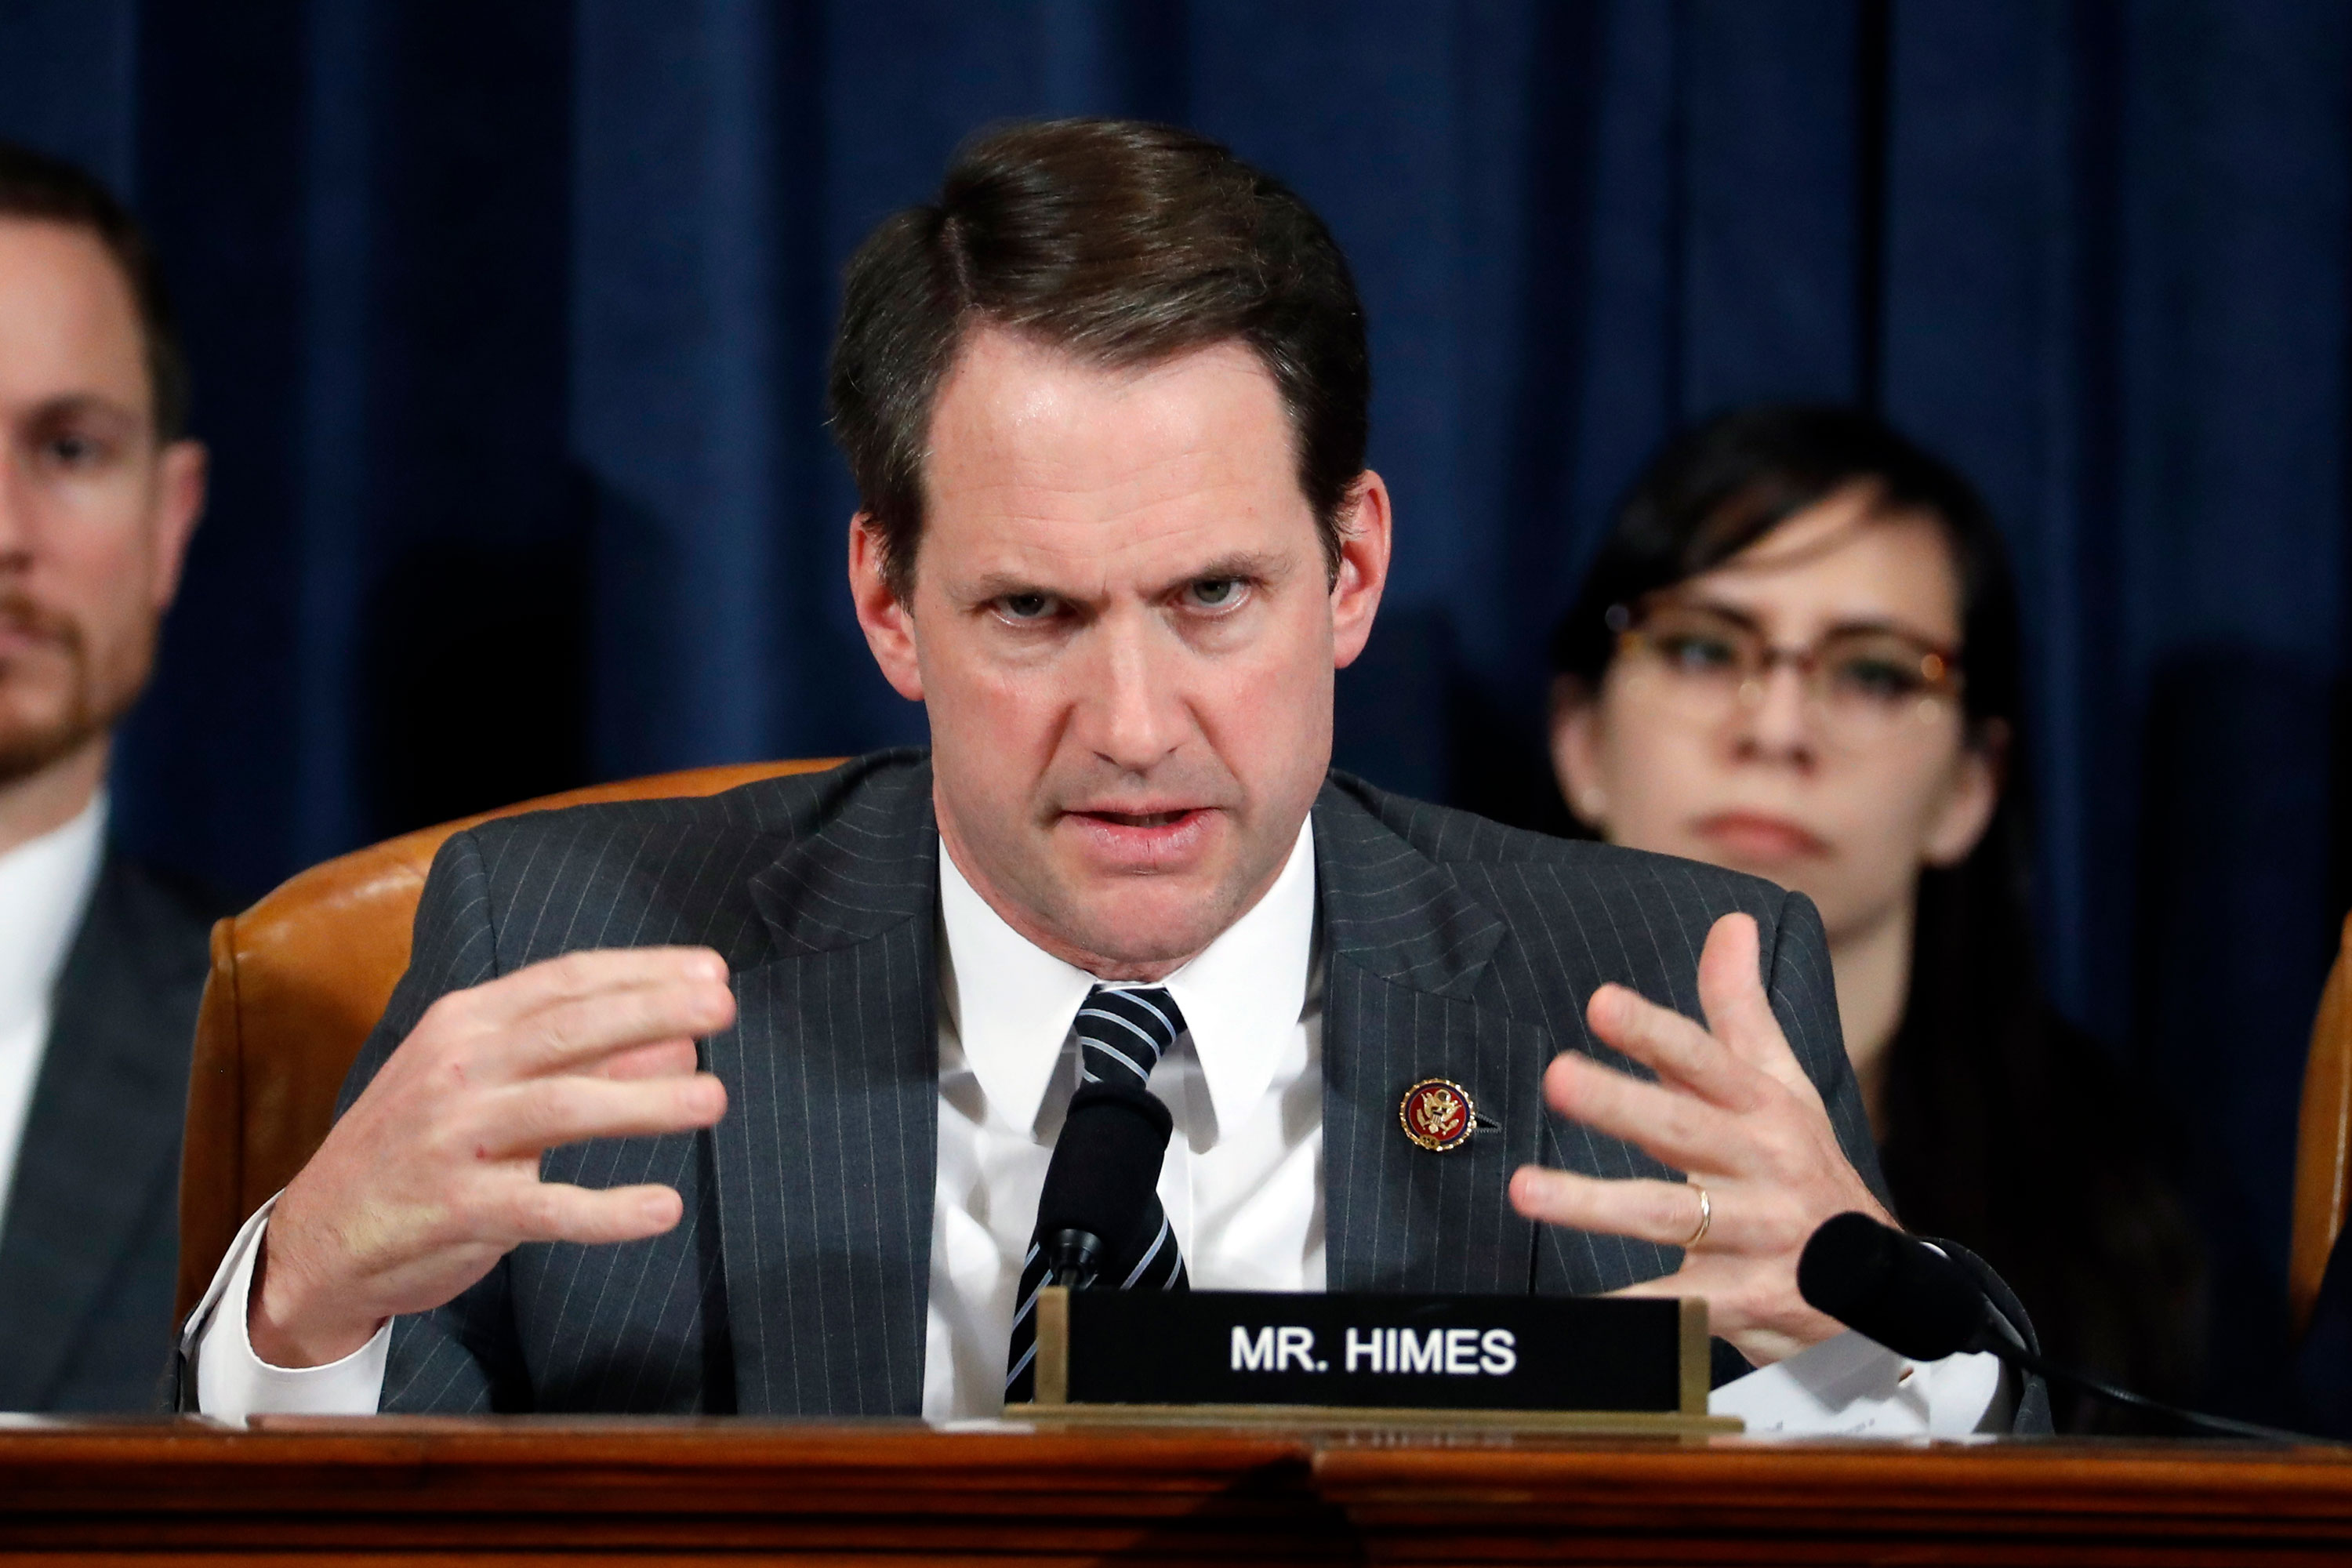 Rep. Jim Himes at a House Intelligence Committee hearing in November 2019.